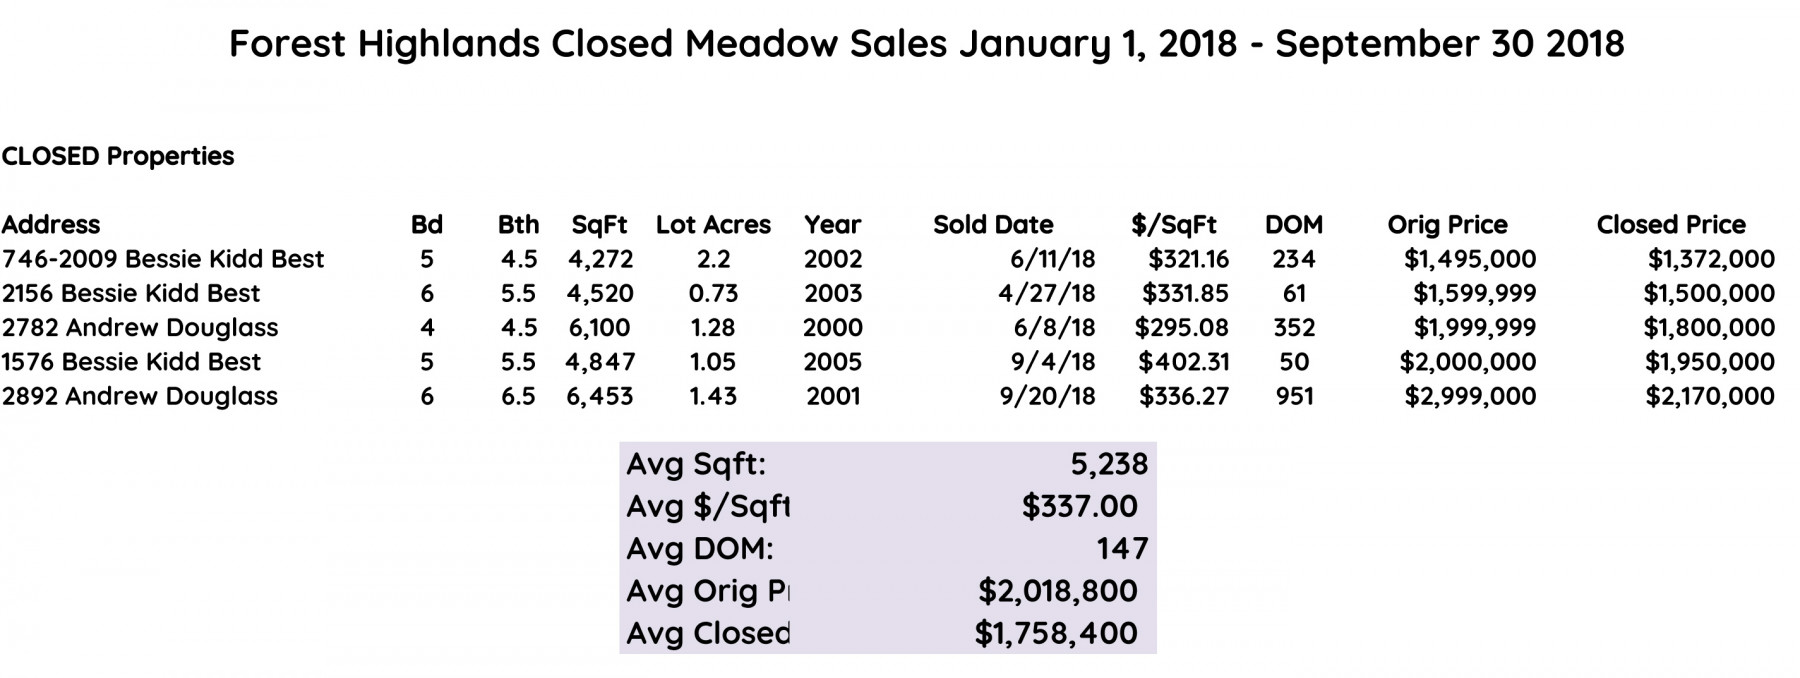 forest highlands closed meadow sales 2018